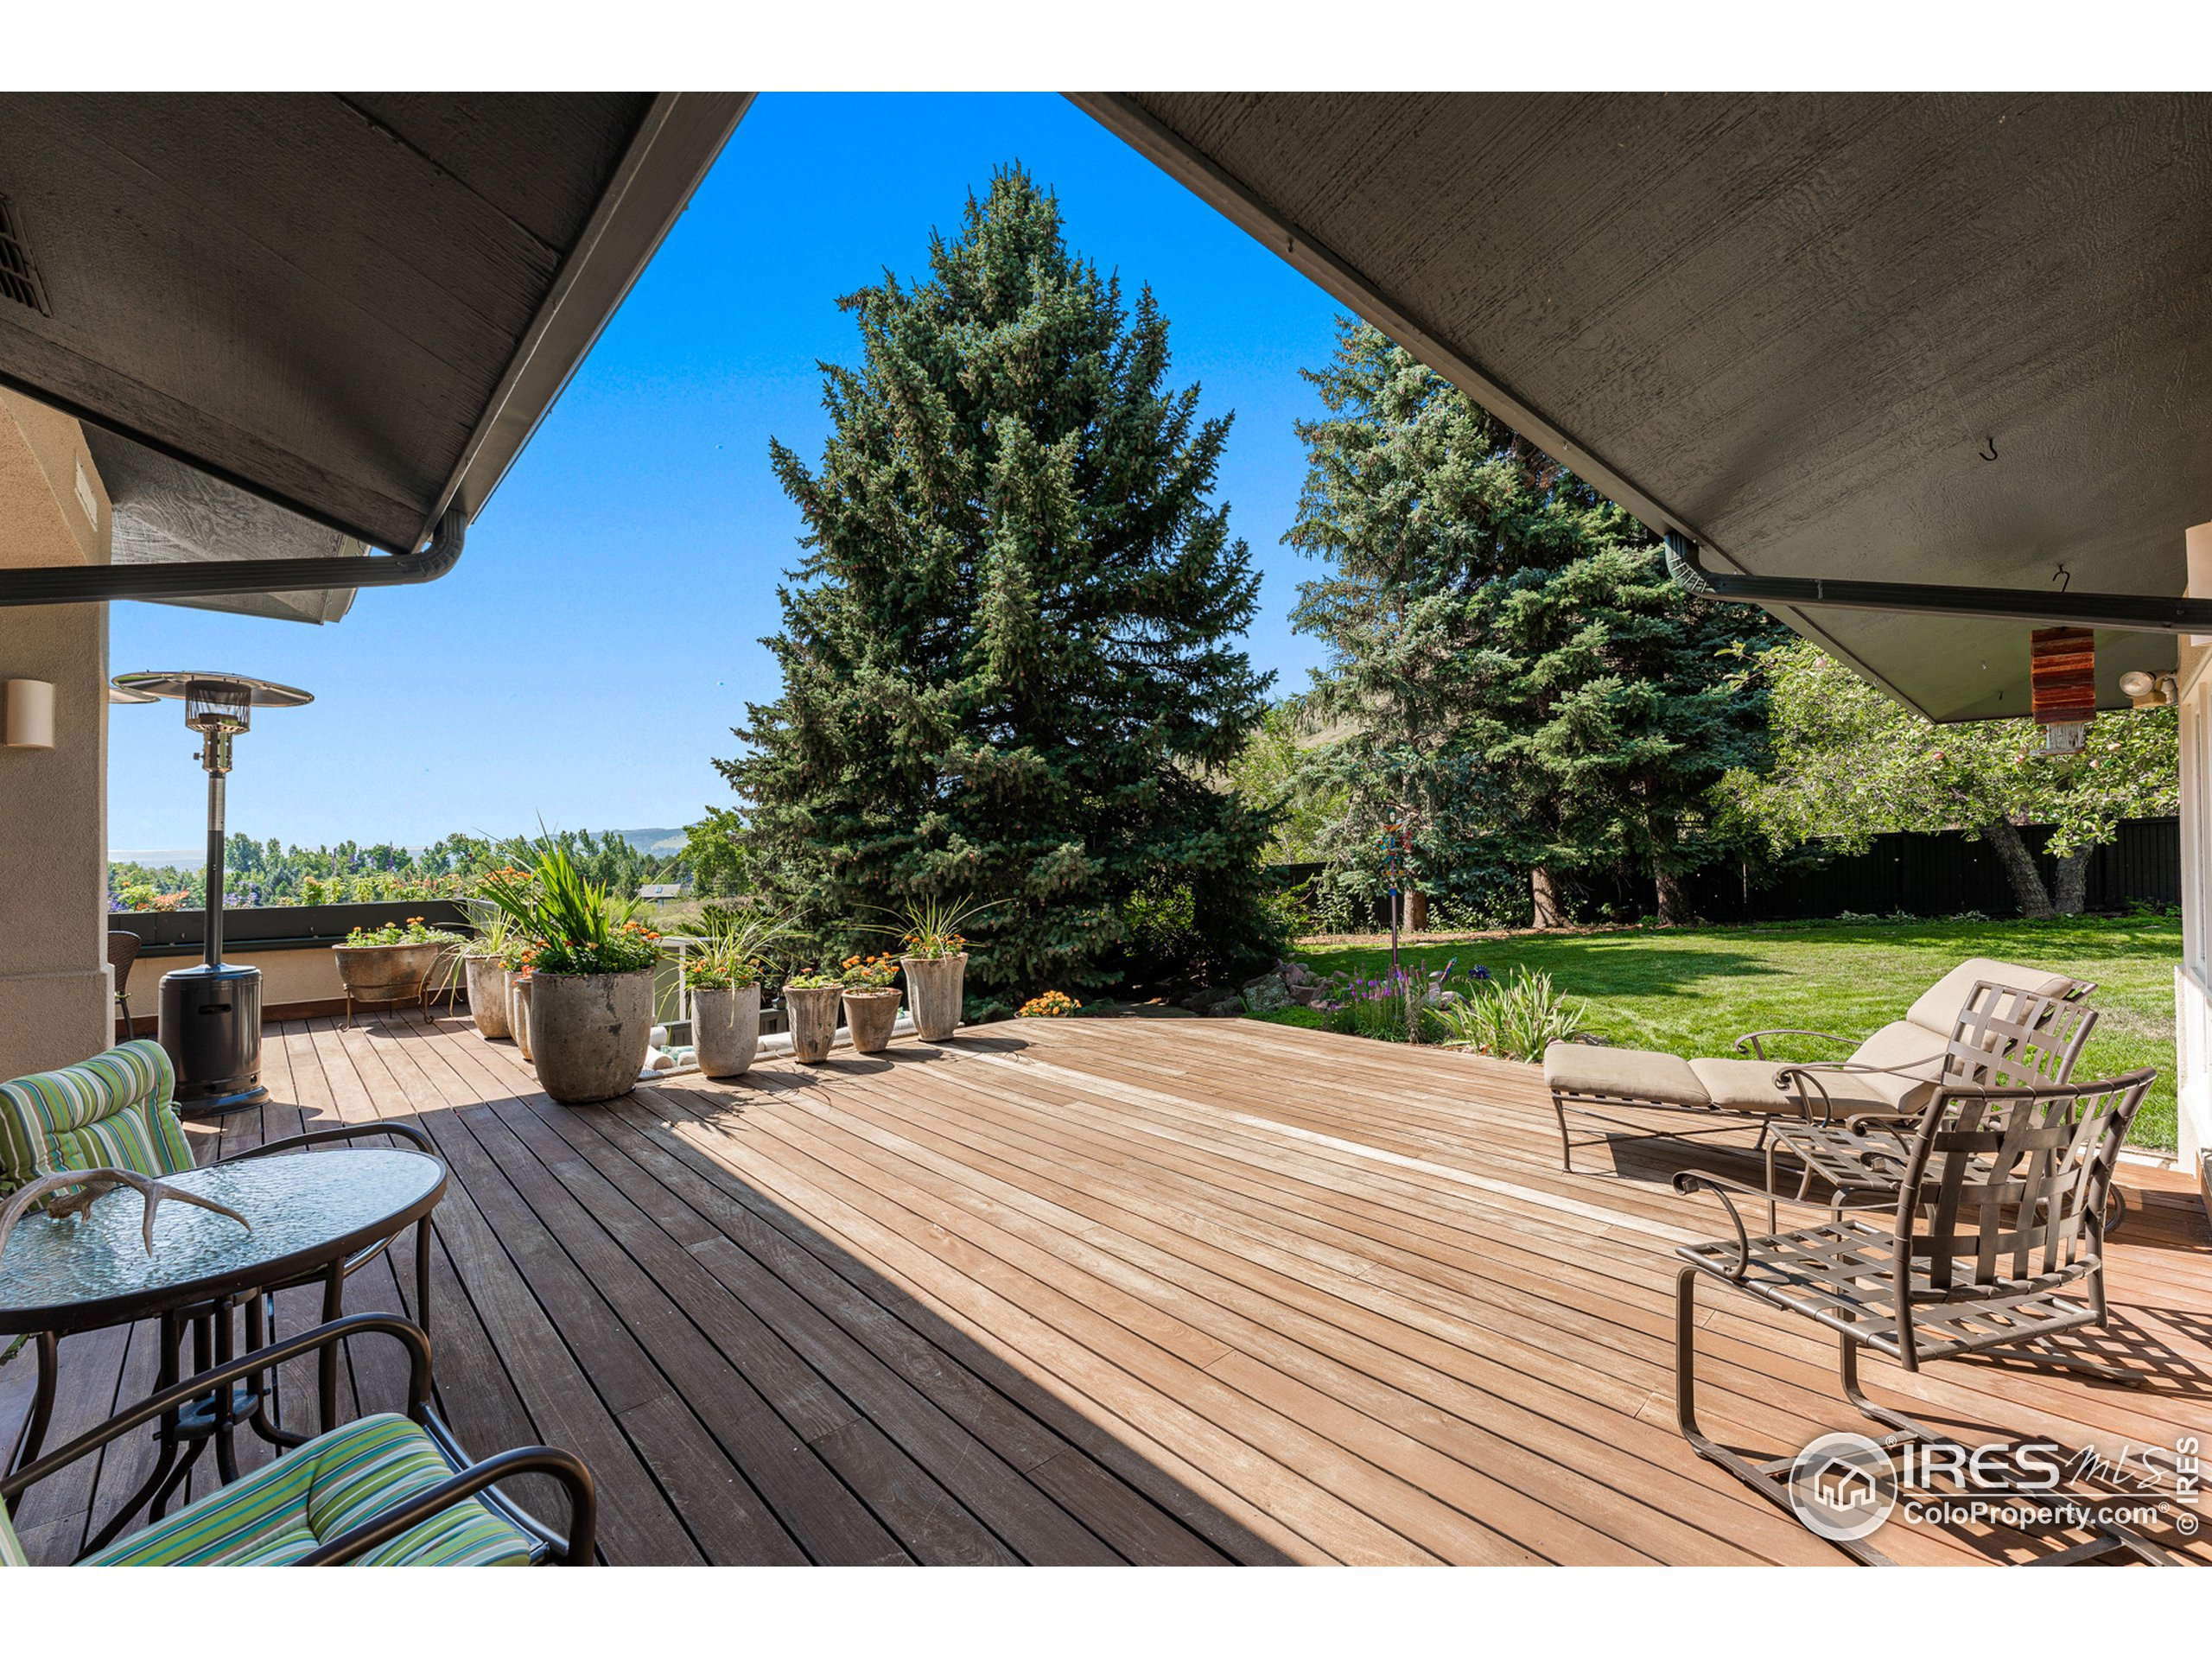 Covered deck dining area